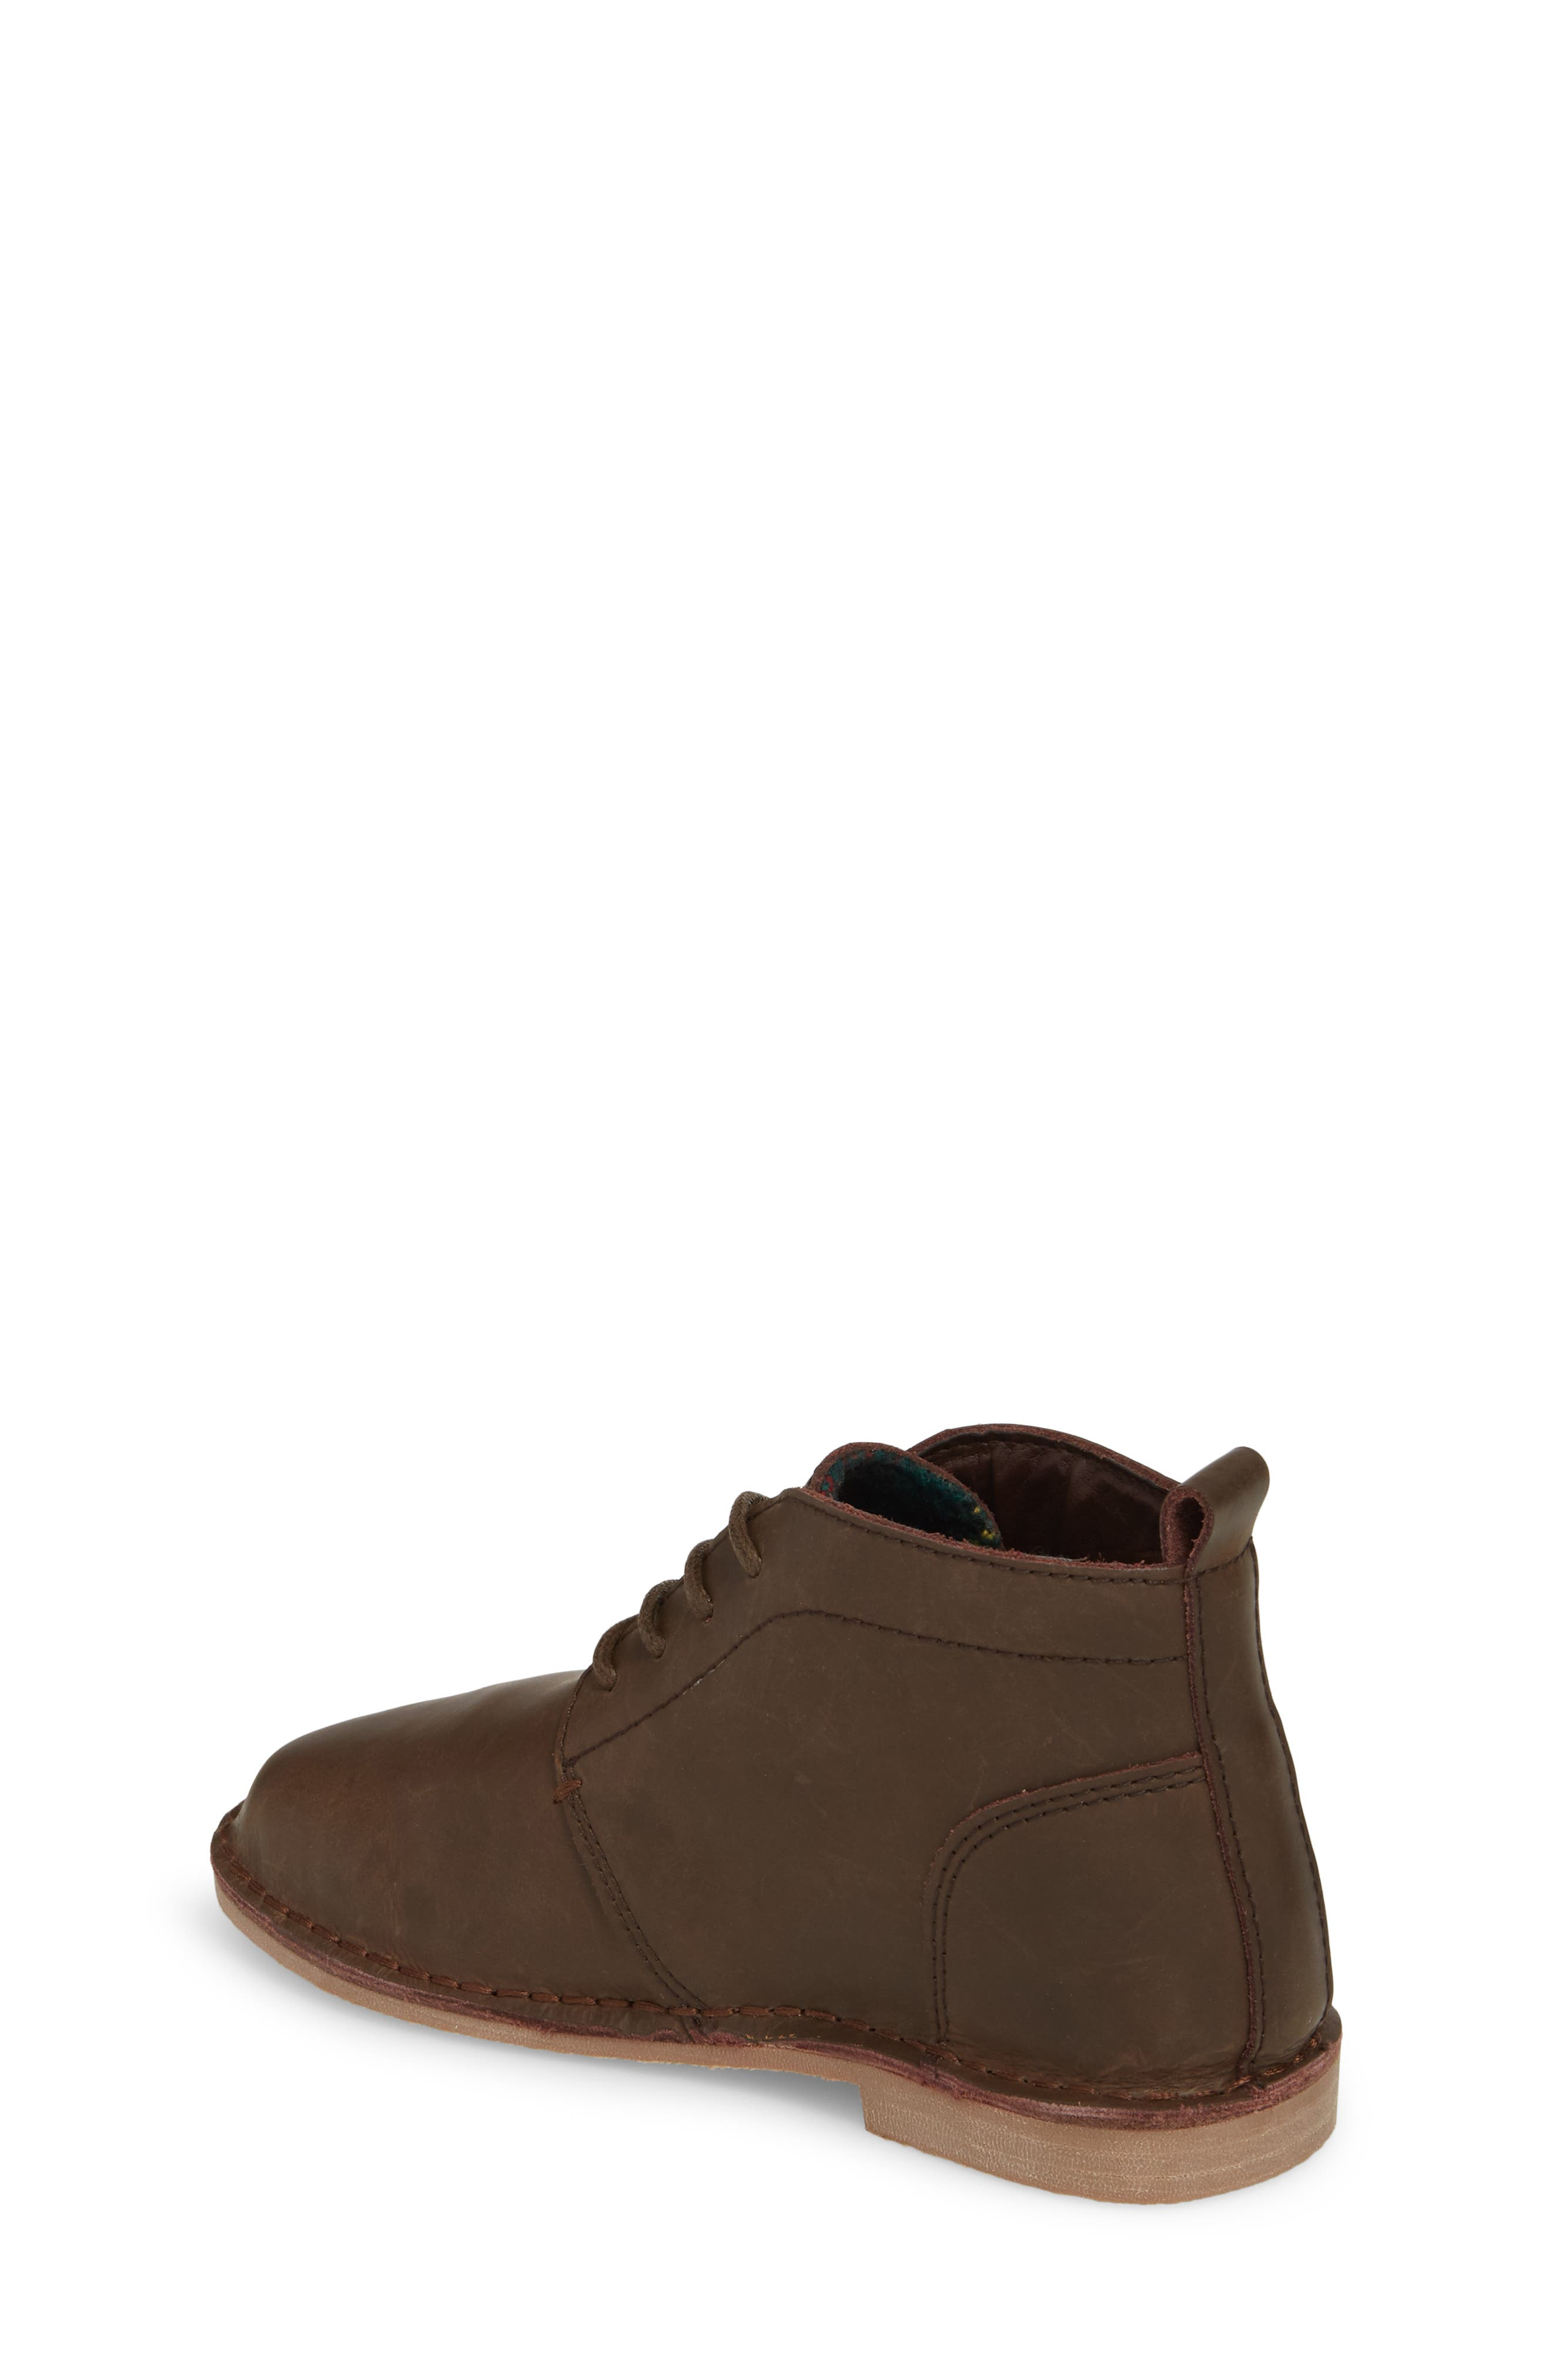 Finley Boot,                             Alternate thumbnail 2, color,                             Chocolate Leather